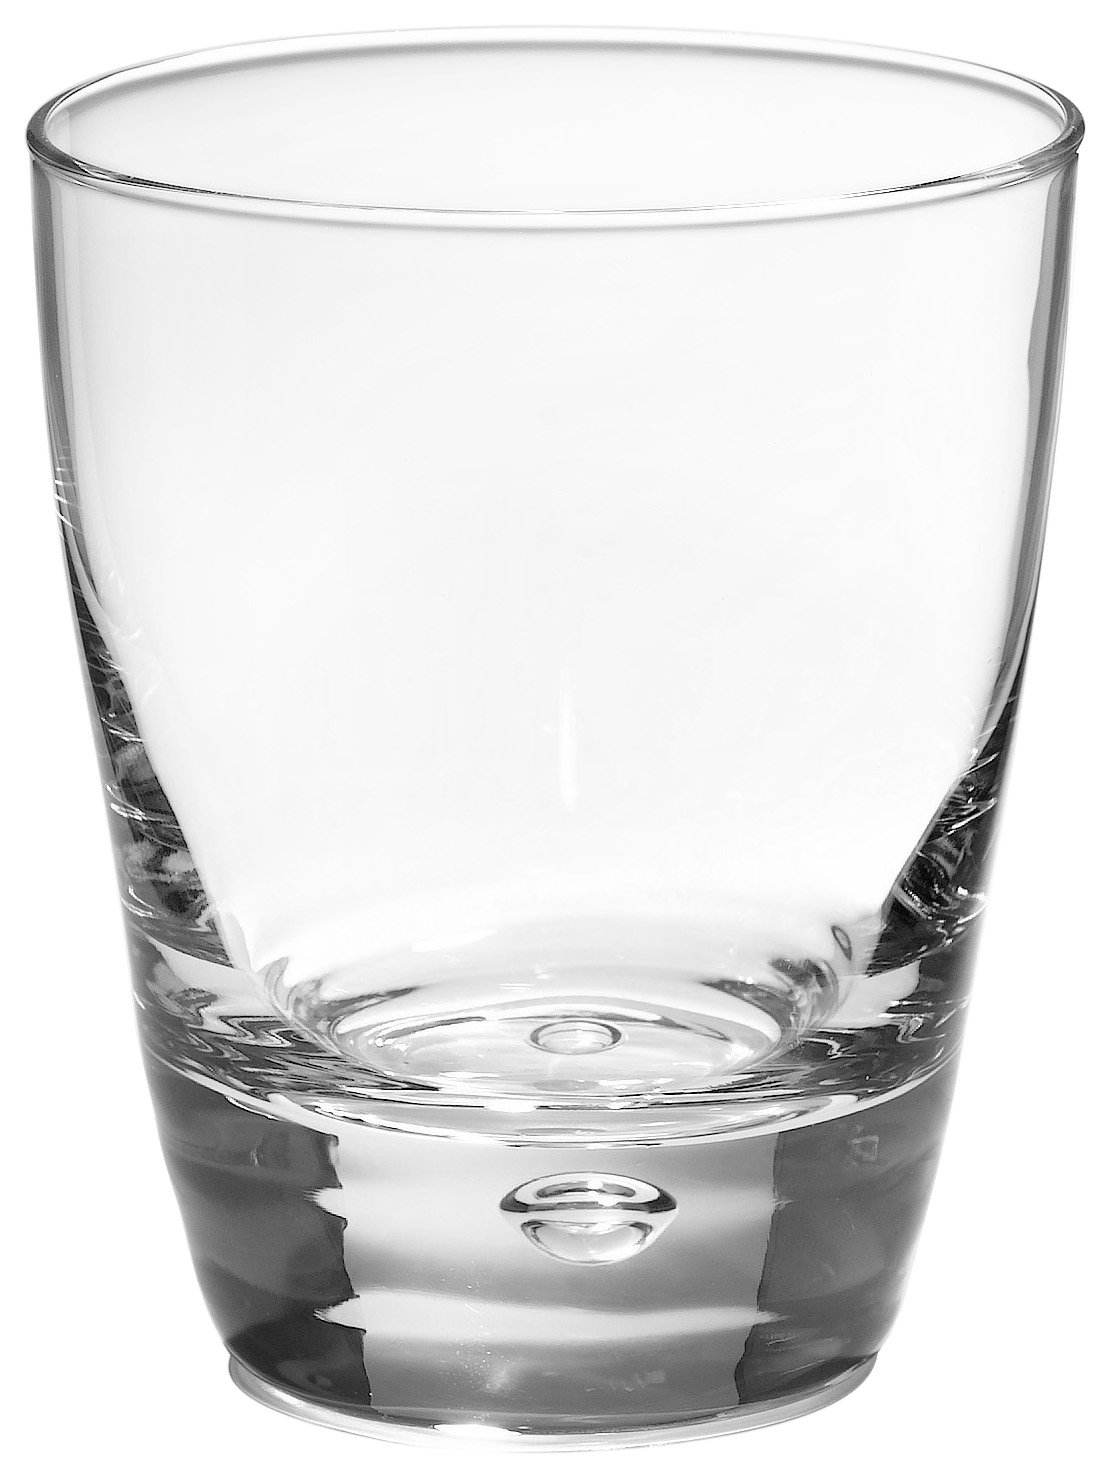 Bormioli Rocco Luna Tumbler Beverage Glasses, Set of 12 191190M04321990